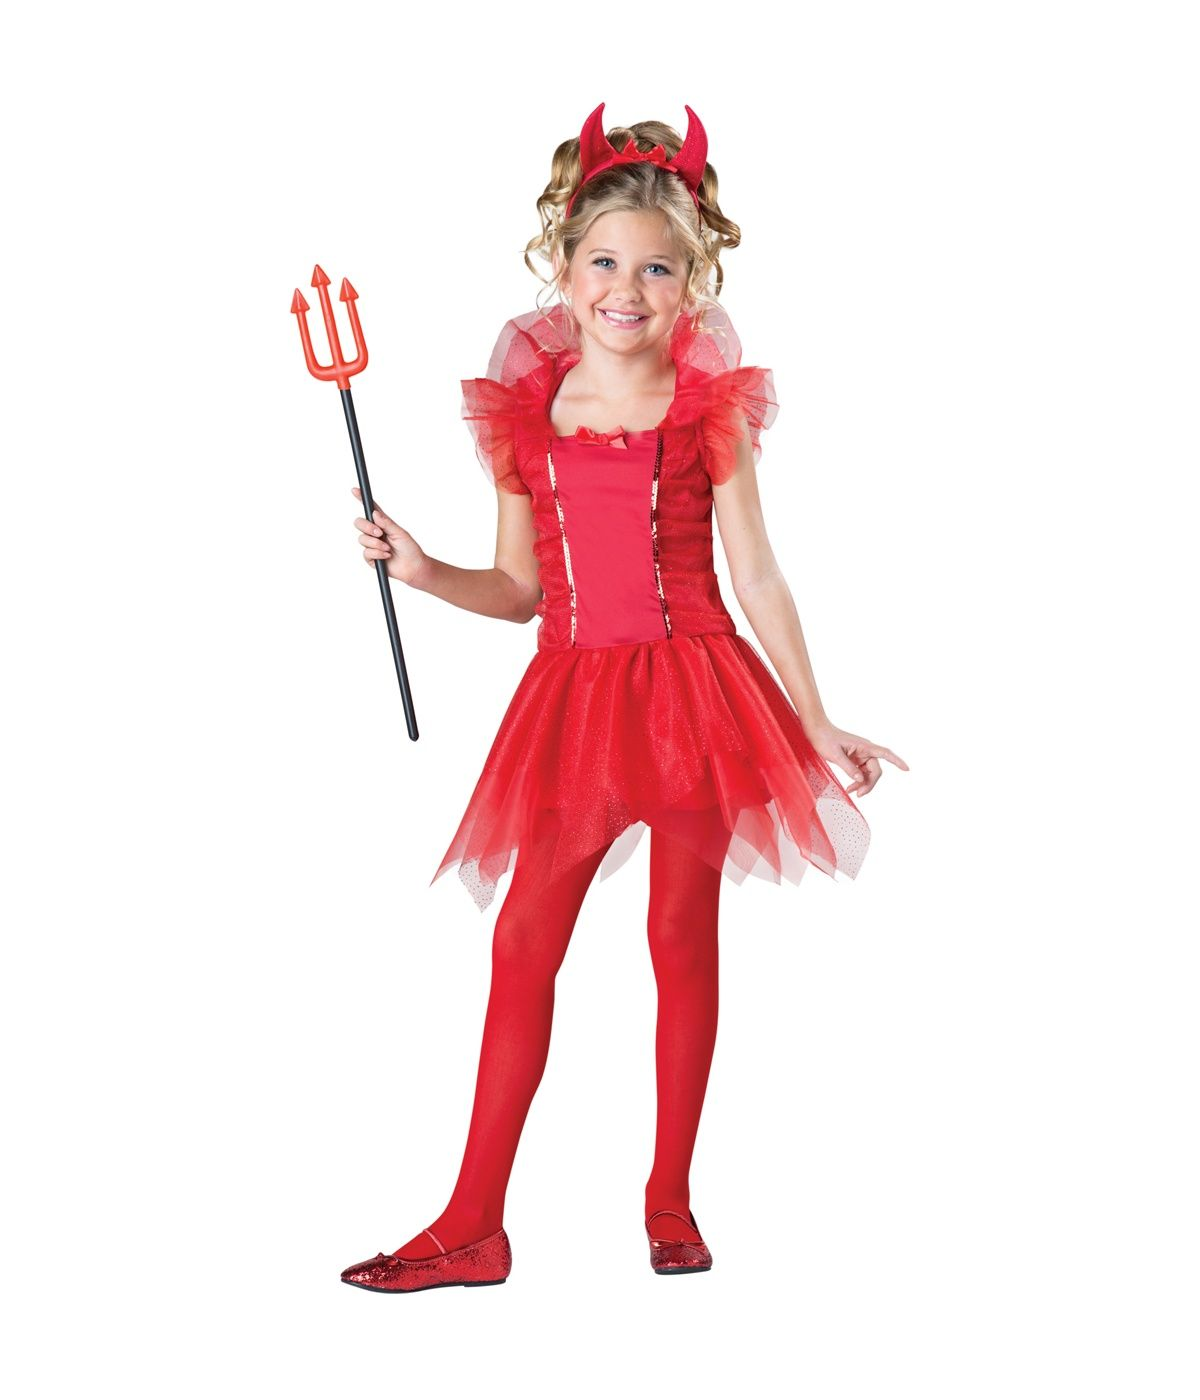 gilrs costumes - 2015 girl costume for halloween | costumes